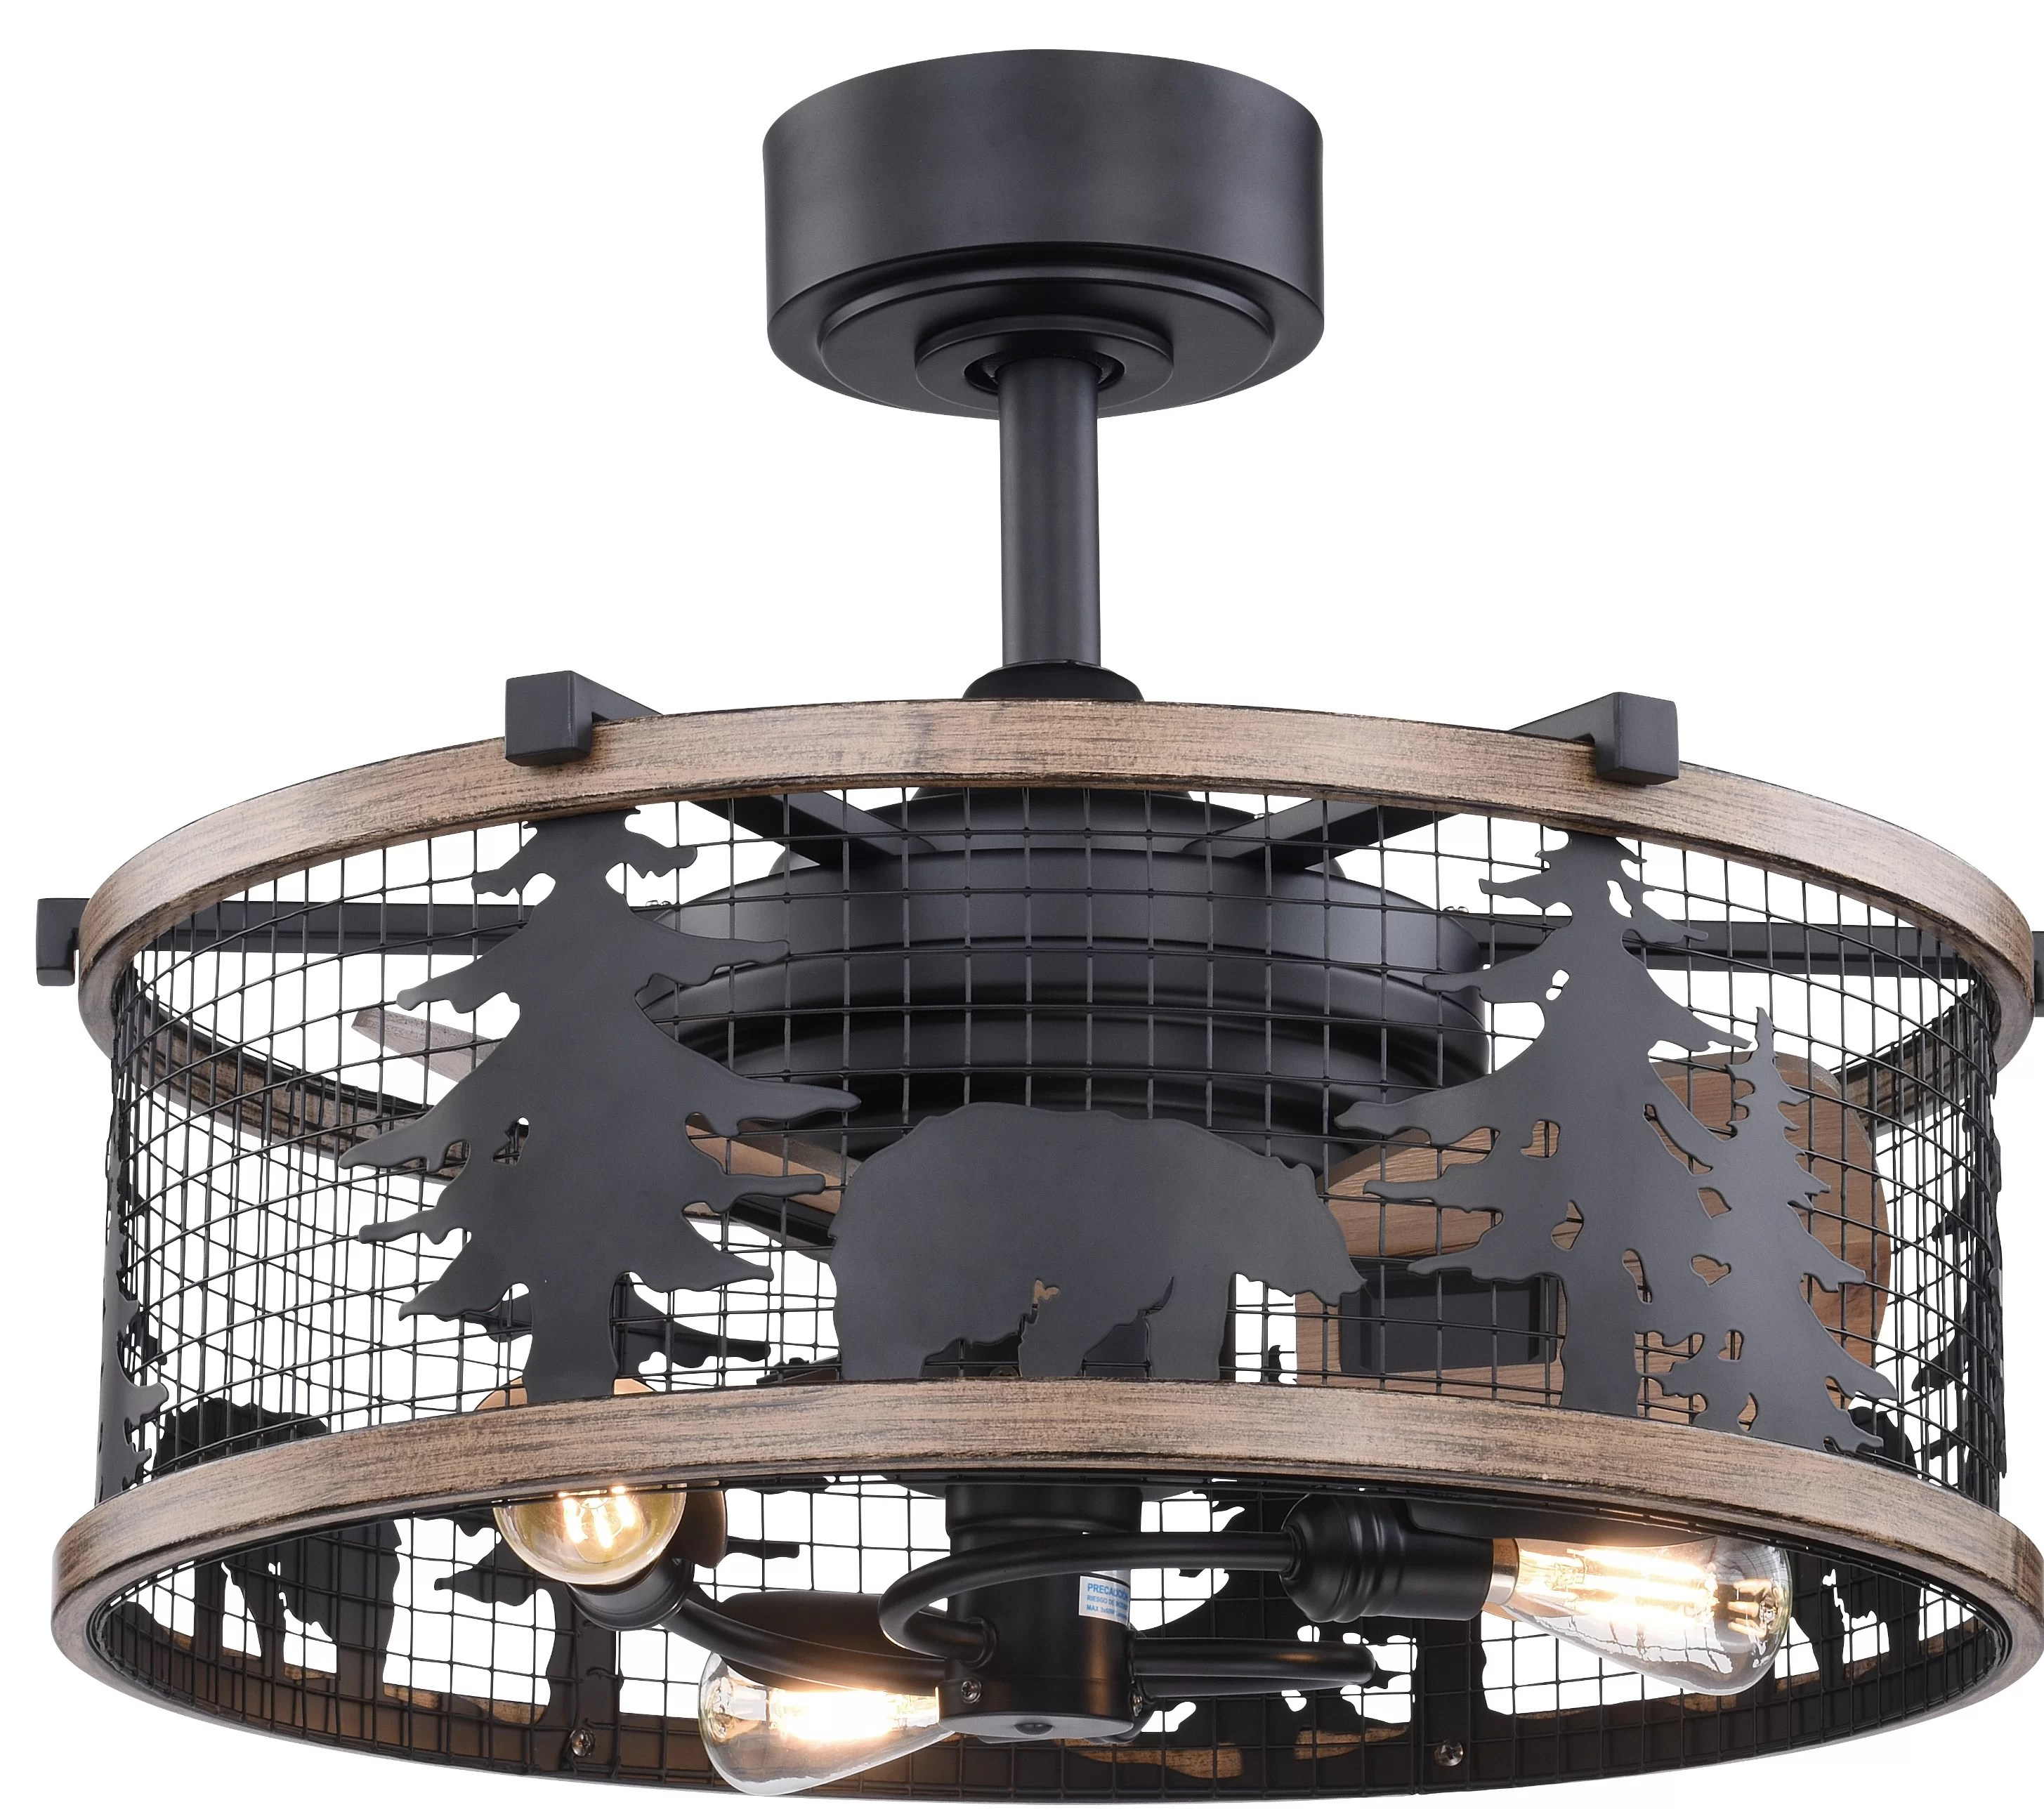 Millwood Pines 21 Sawyers 3 Blade Caged Ceiling Fan With Remote Control And Light Kit Included Reviews Wayfair